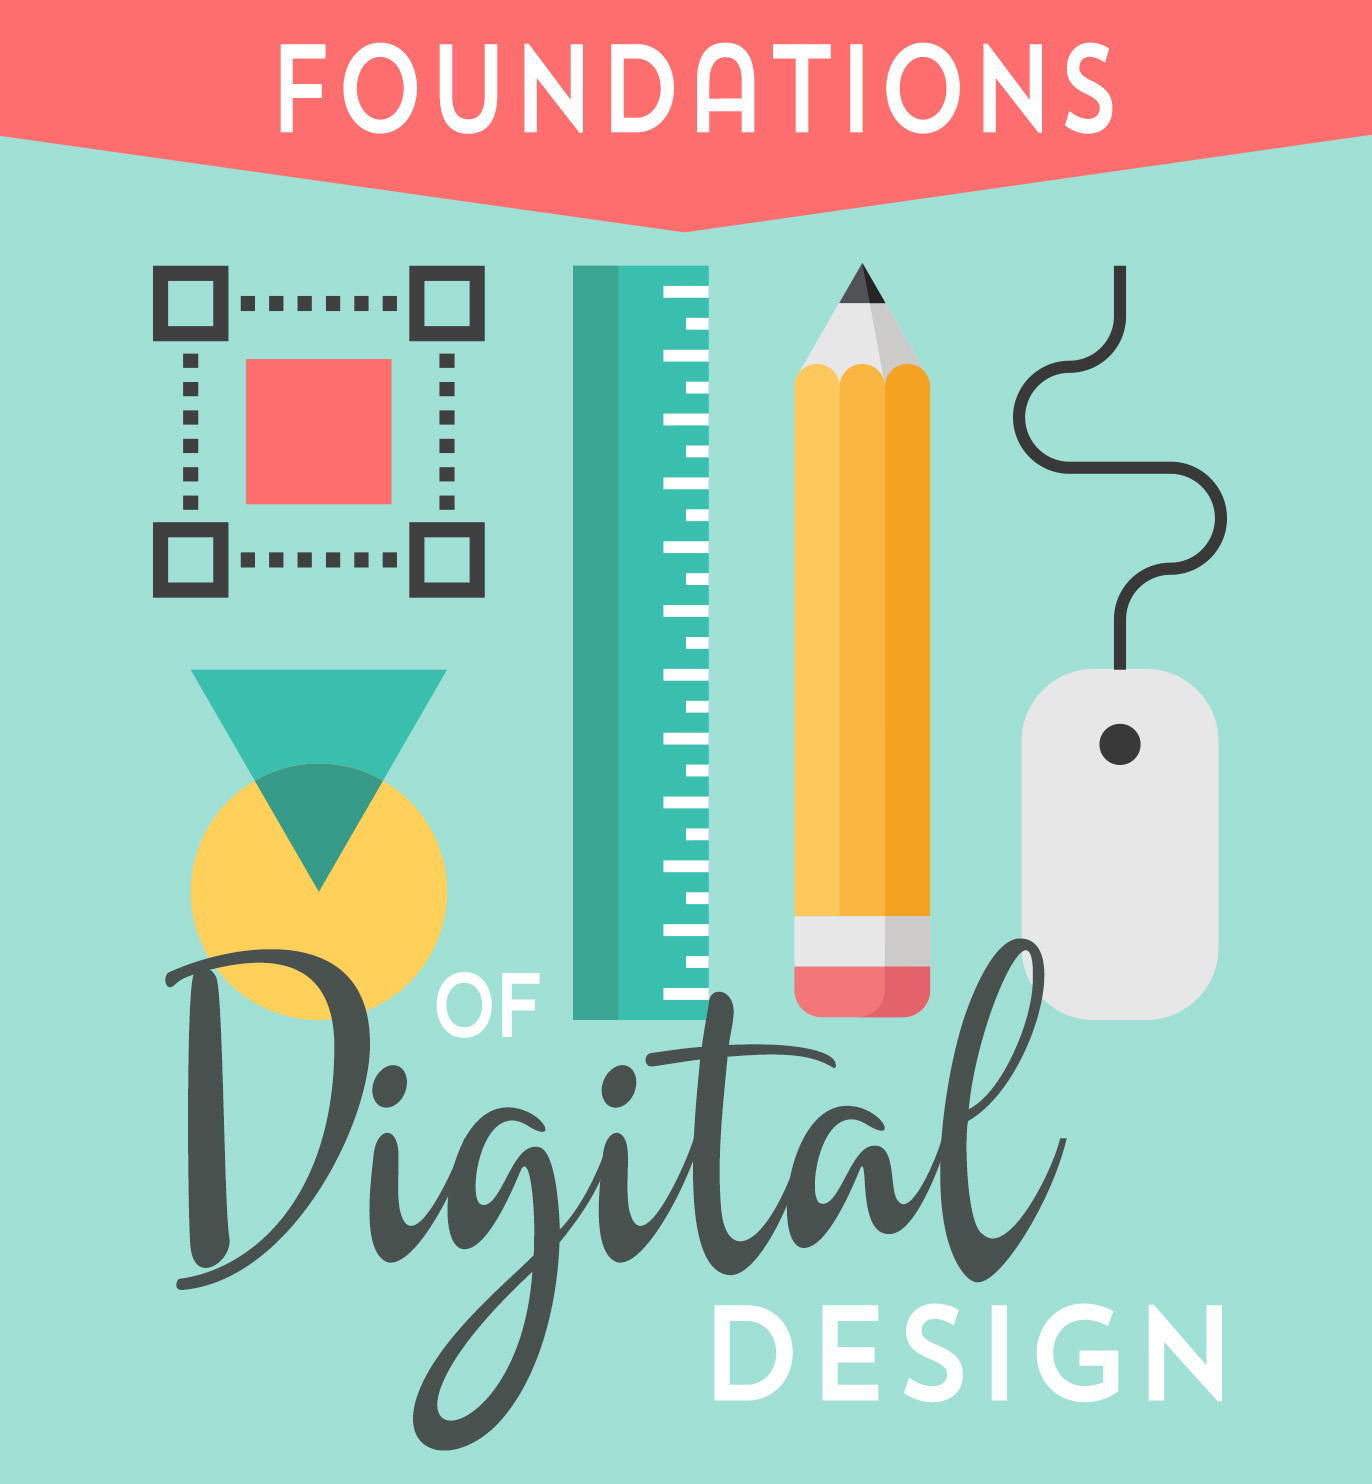 Foundations of Digital Design Graphic